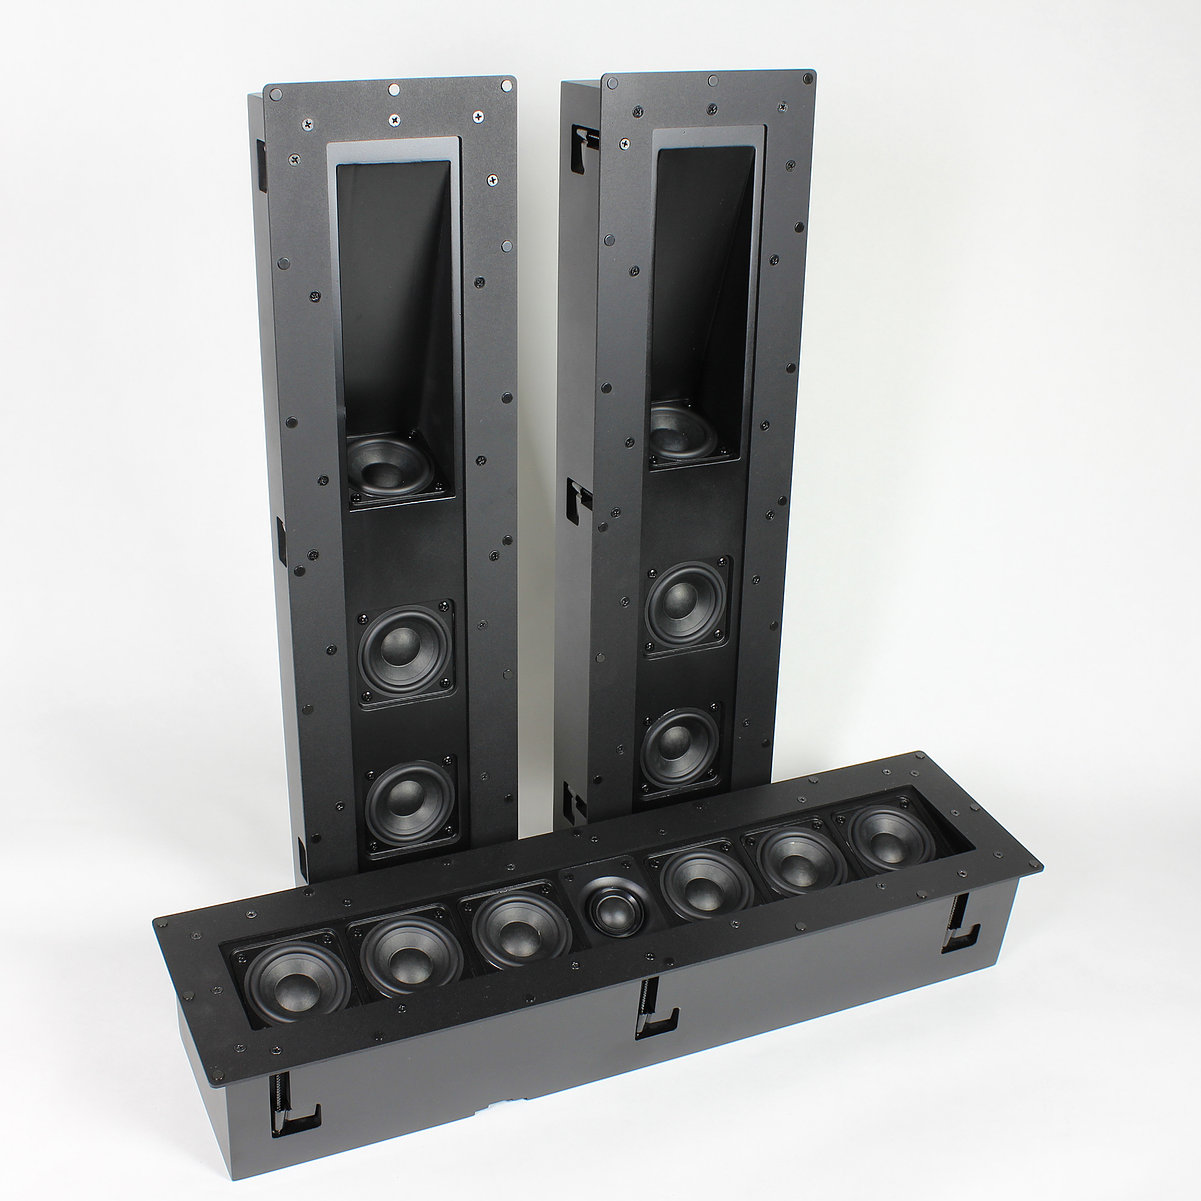 TDG Audio COMPLETE 7.1 SKYBAR SYSTEM